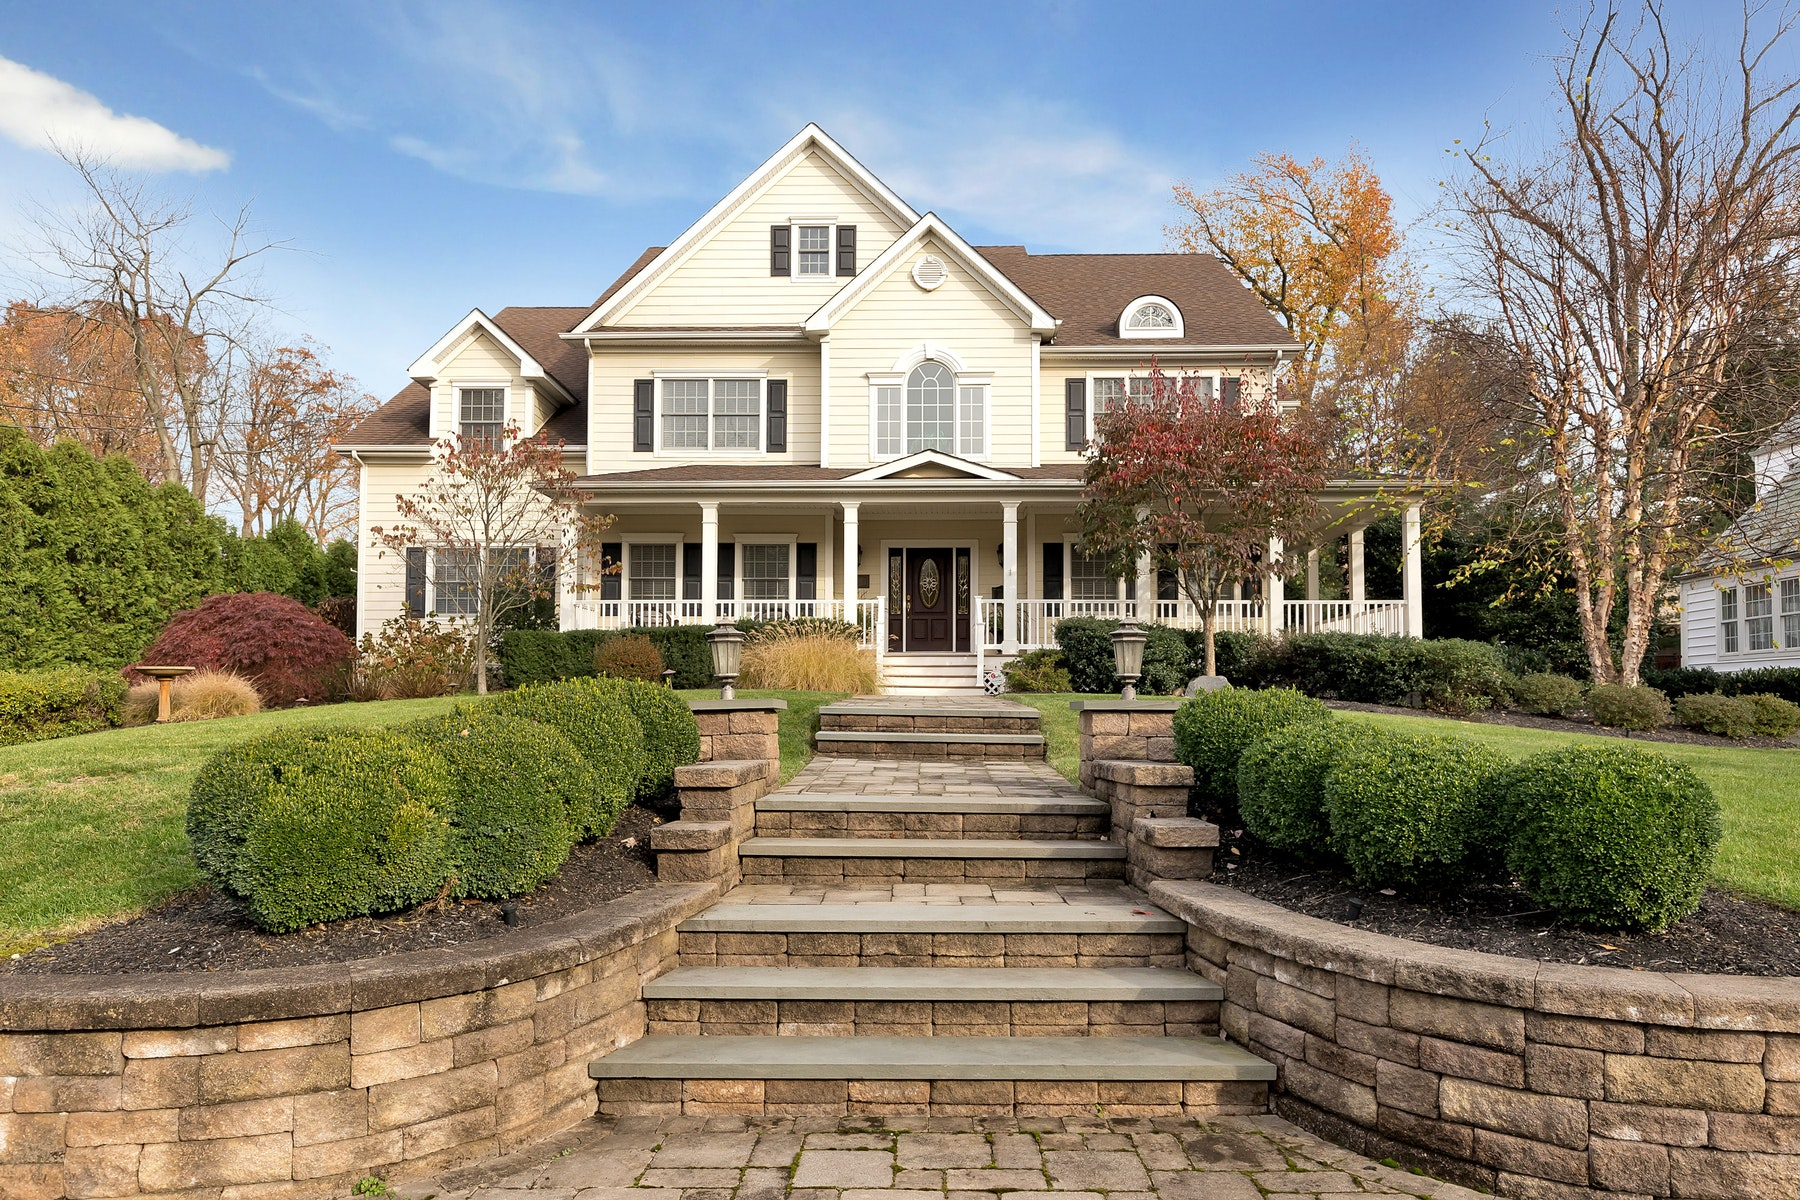 Single Family Home for Sale at Gracious Colonial 86 Linden Avenue, Metuchen, New Jersey 08840 United States